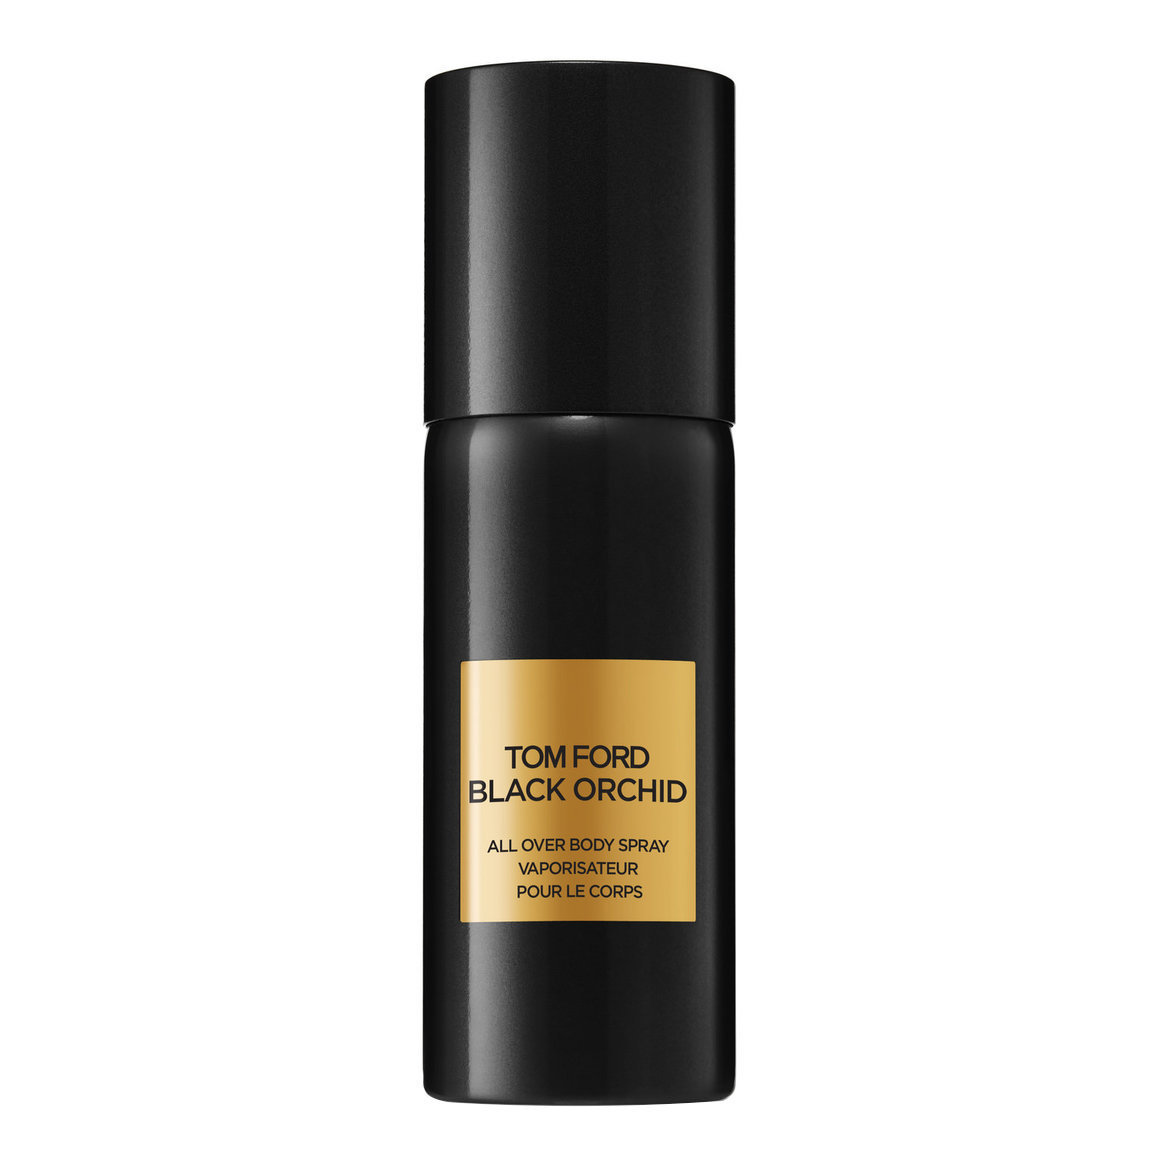 TOM FORD Black Orchid All Over Body Spray product swatch.